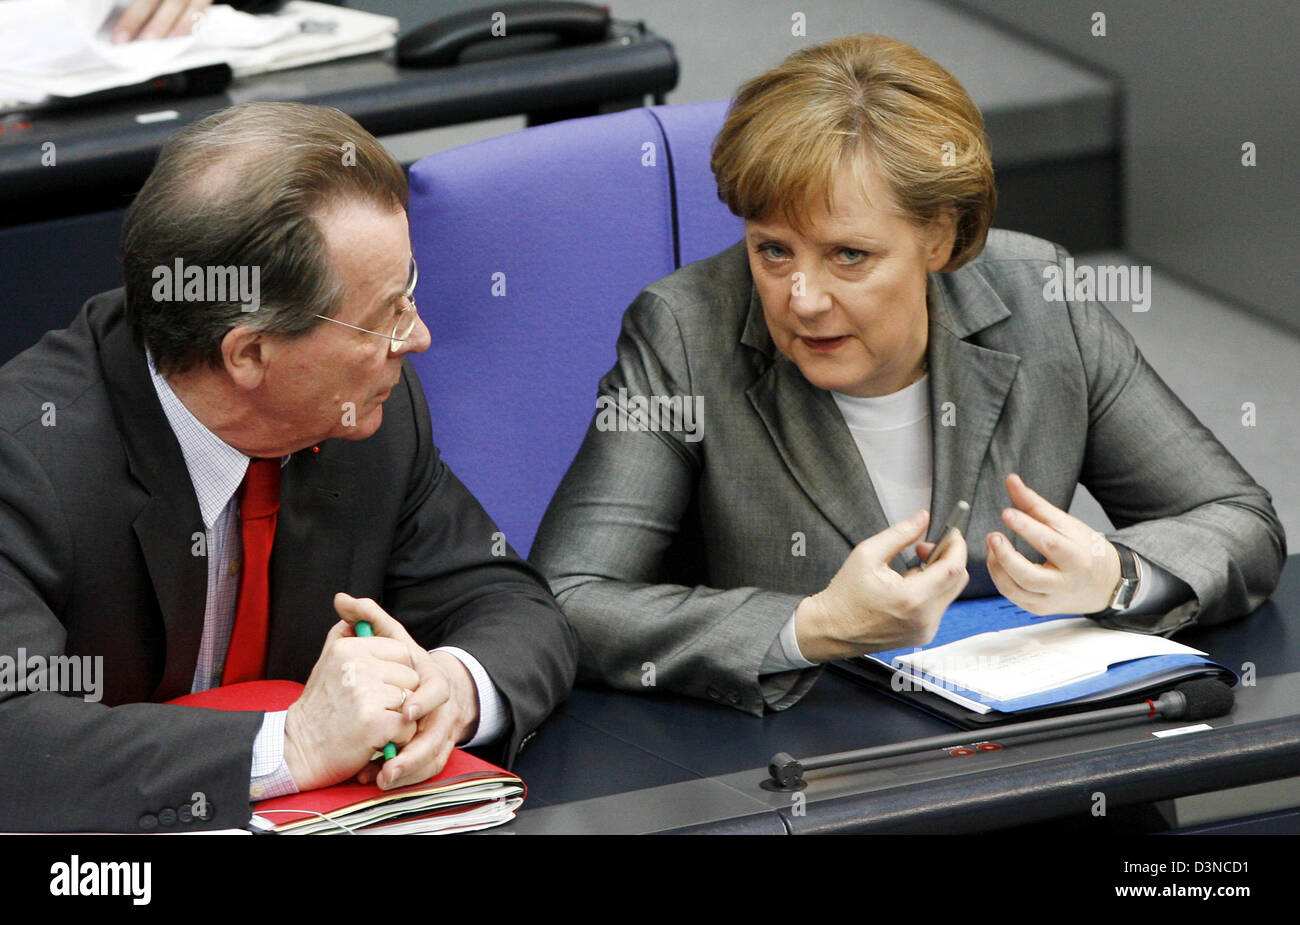 German Minister of Labour and Vice-Chancellor Franz Muentefering (L) and German Chancellor Angela Merkel (R) chat on the government bench in the Bundestag in Berlin, Germany, Tuesday, 28 March 2006. Four months after the start of the Grand Coalition the Bundestag budget debate begins today. The parliament will debate on the 2006 budget draft and the financial planning of the Federa Stock Photo